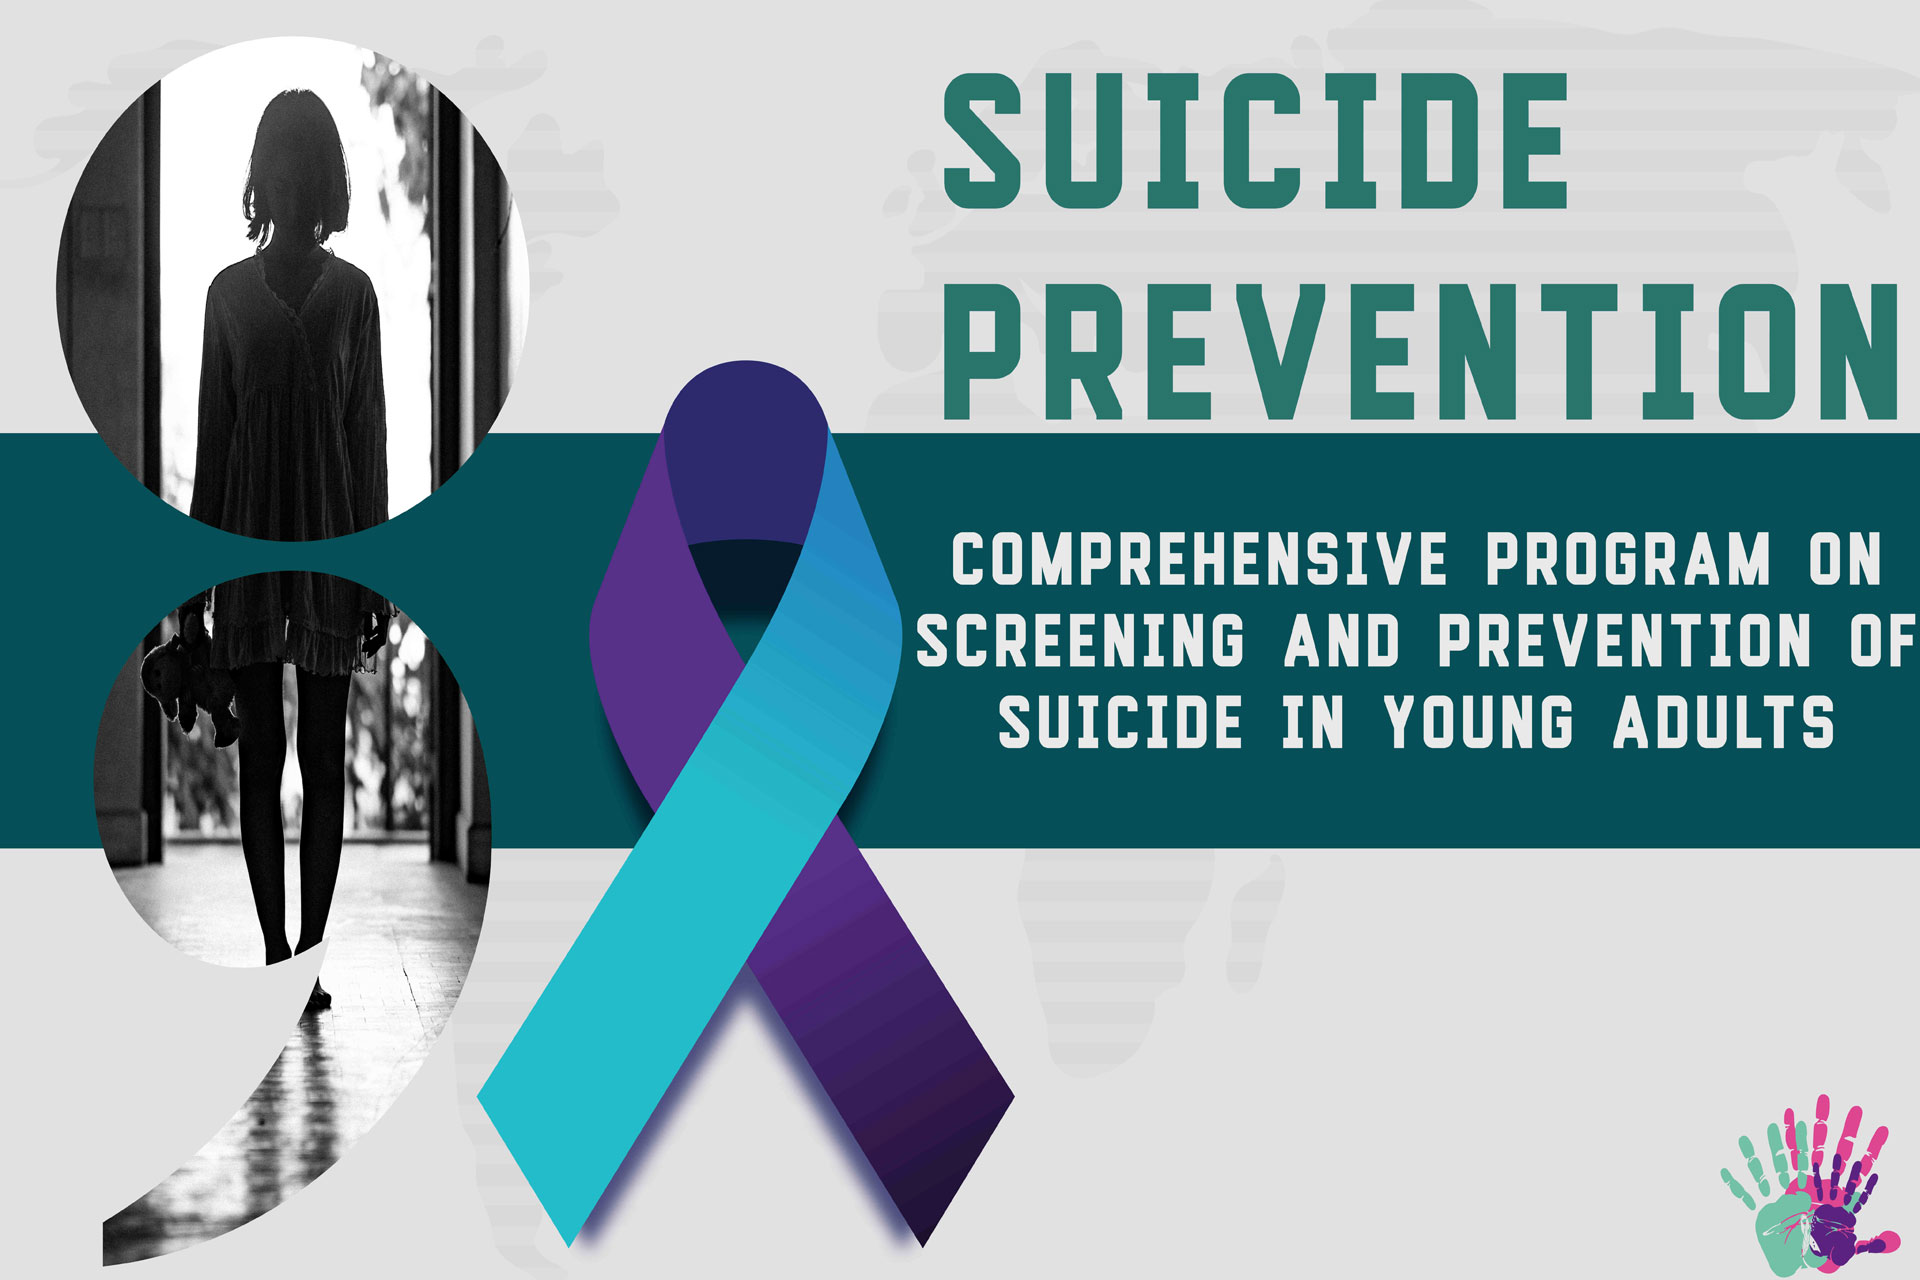 prevention-of-suicide-in-young-adults